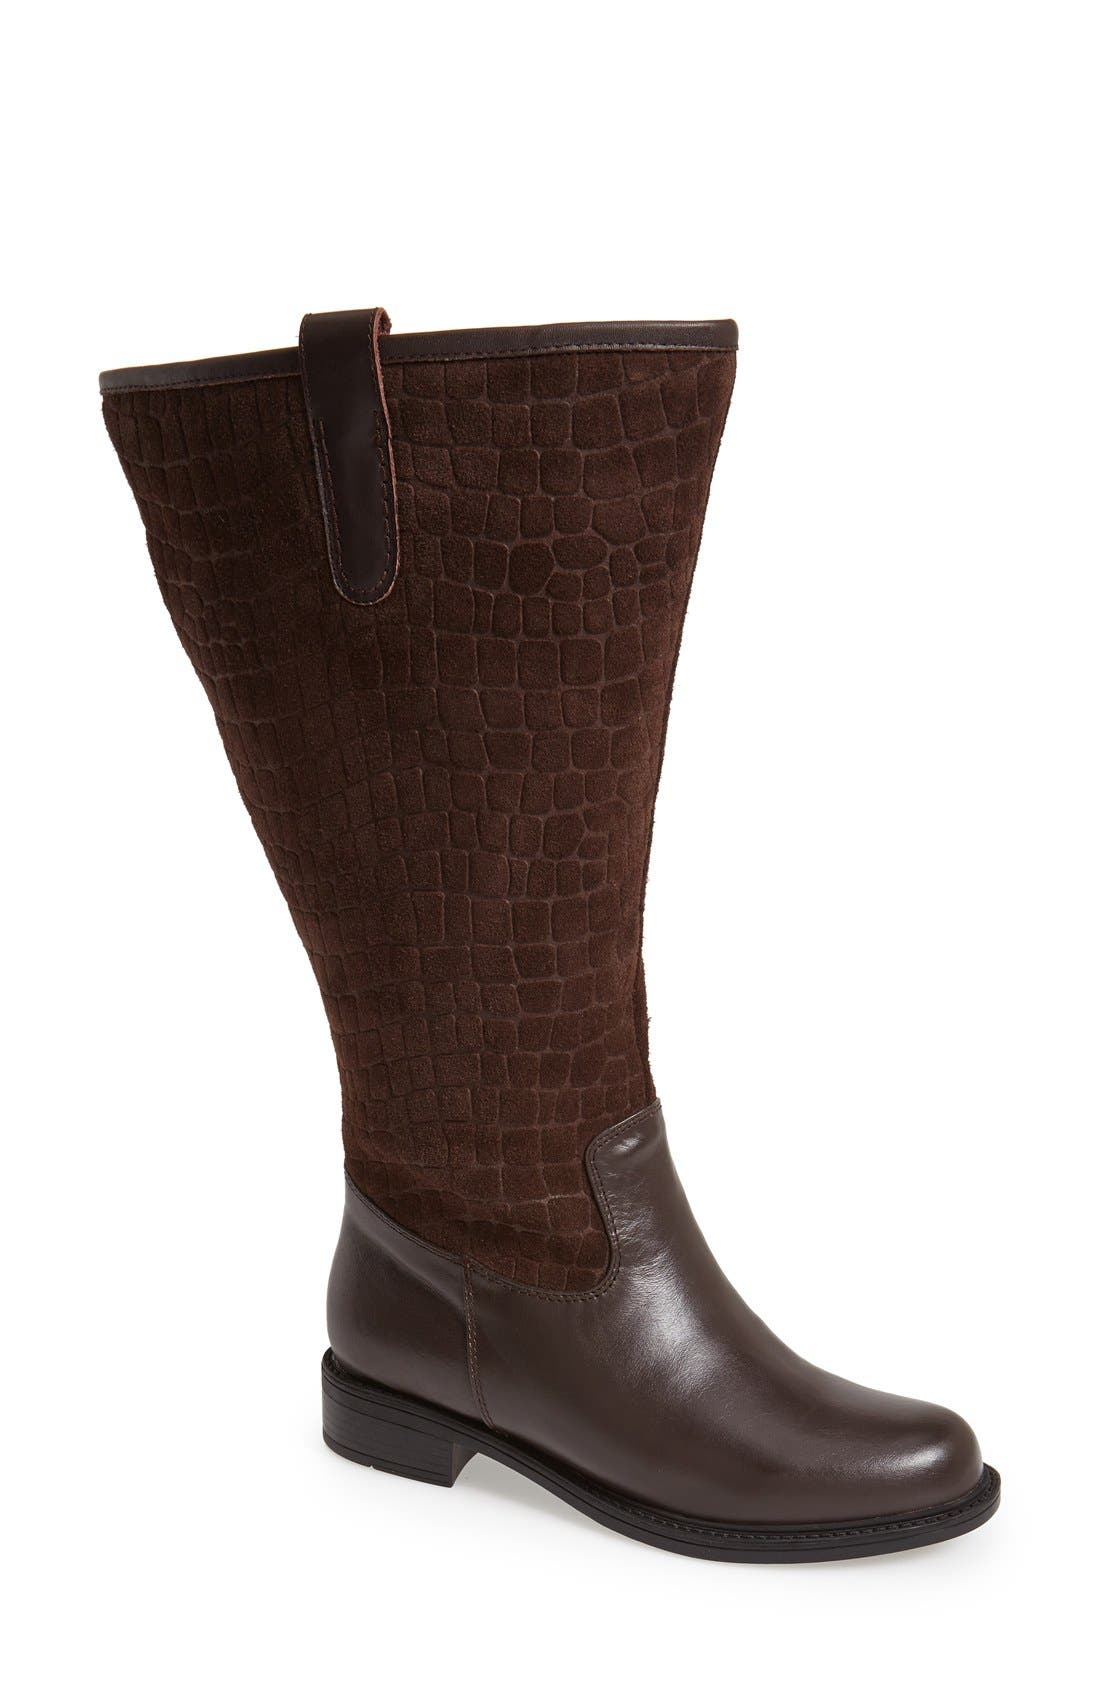 DAVID TATE 'Best' Calfskin Leather & Suede Boot